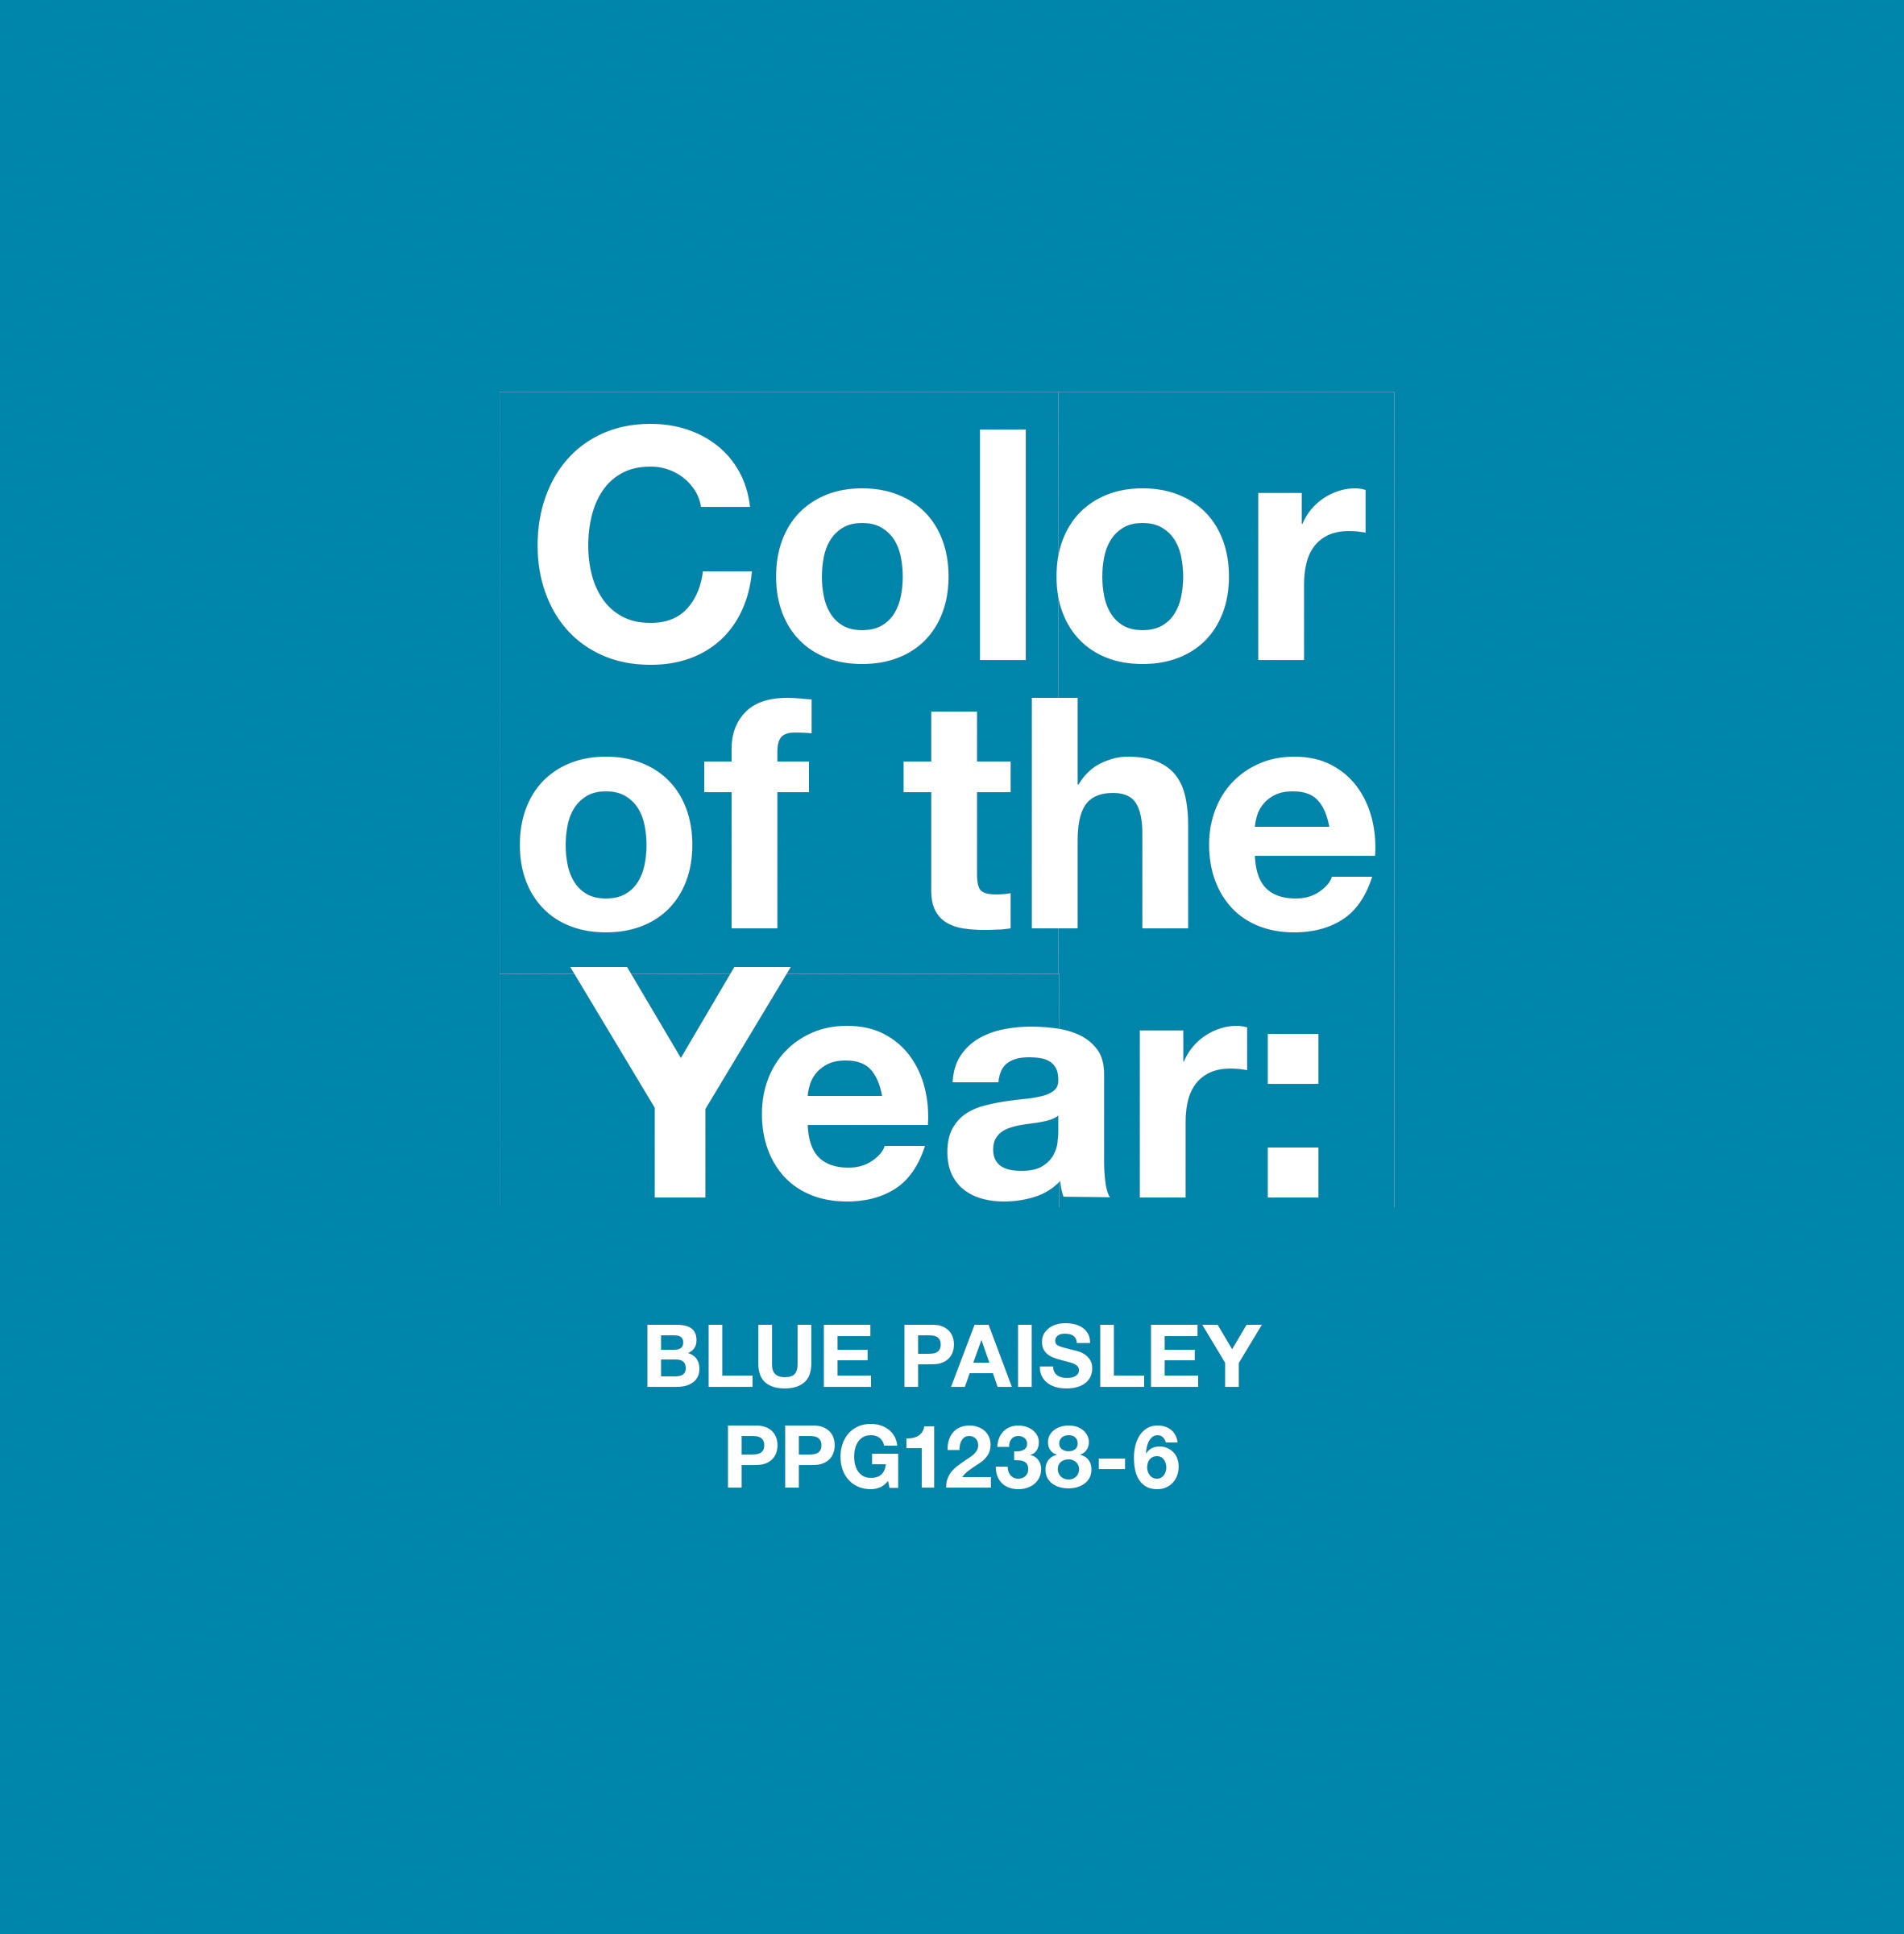 The PPG Pittsburgh Paints 2015 Color of the Year, Blue Paisley, is enthusiastically positive and represents possibility. The color has global ties, a bohemian flare and is reminiscent of mosaic stones.